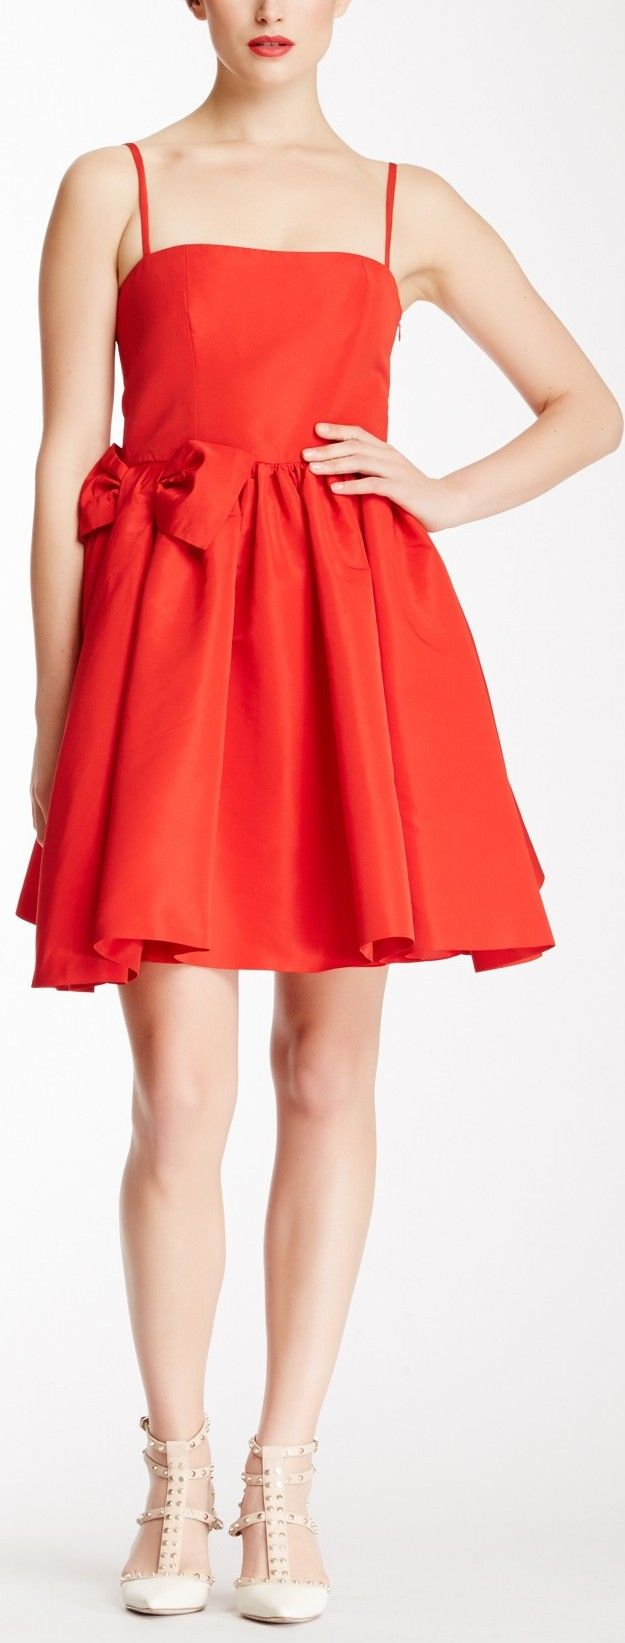 Red Valentino Square Neck Cocktail Dress